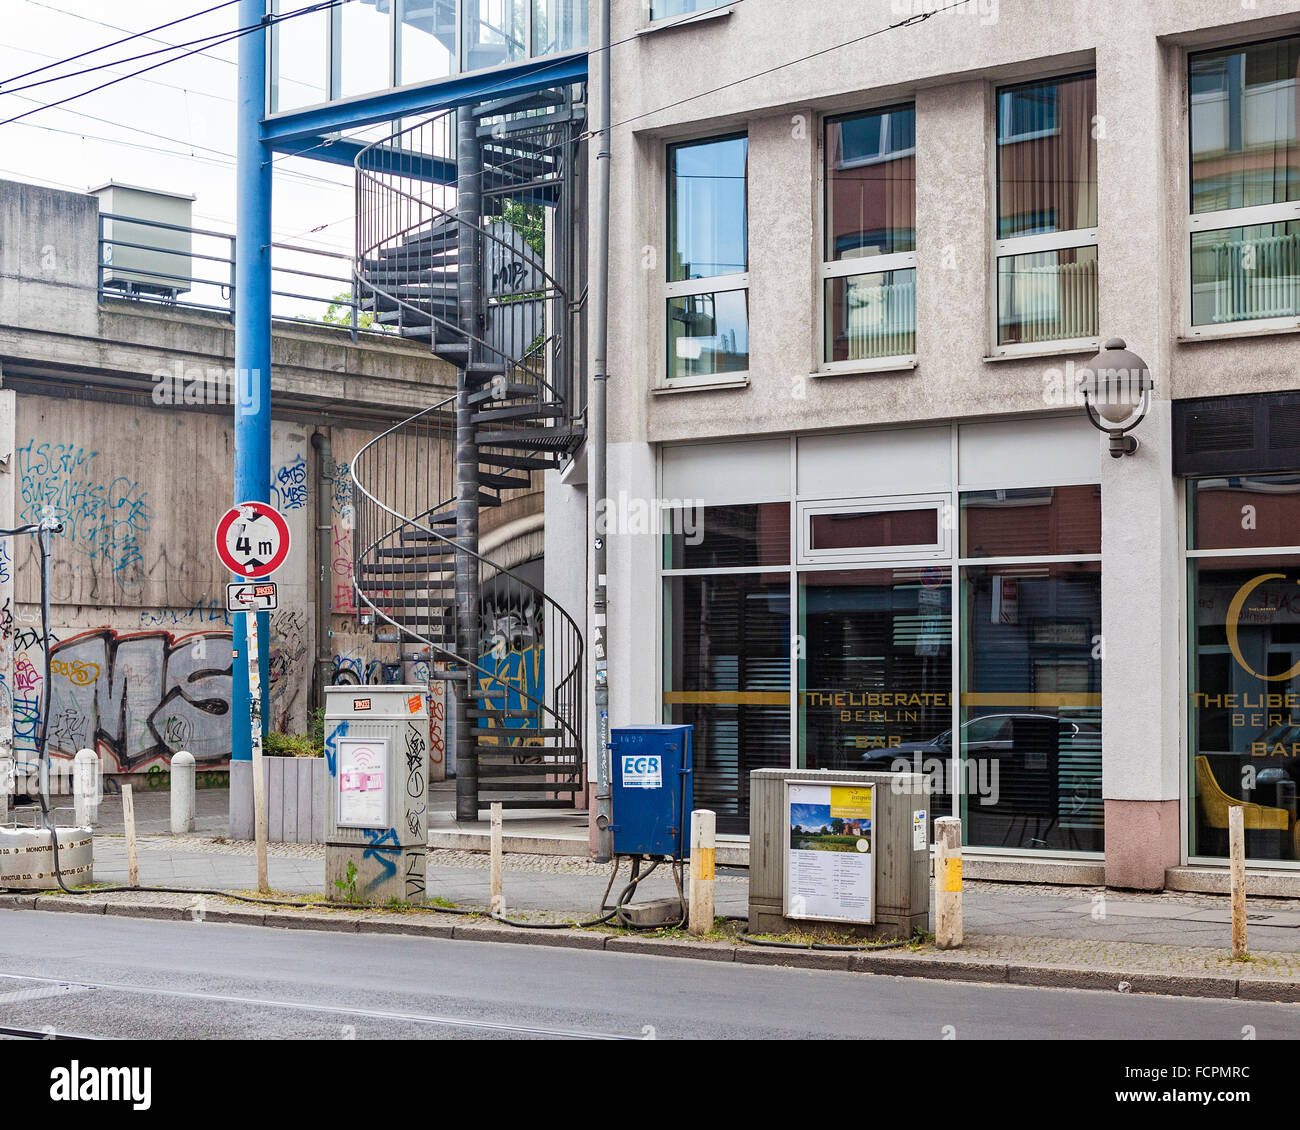 Berlin, The Liberate Bar exterior with spiral staircase Stock Photo ...